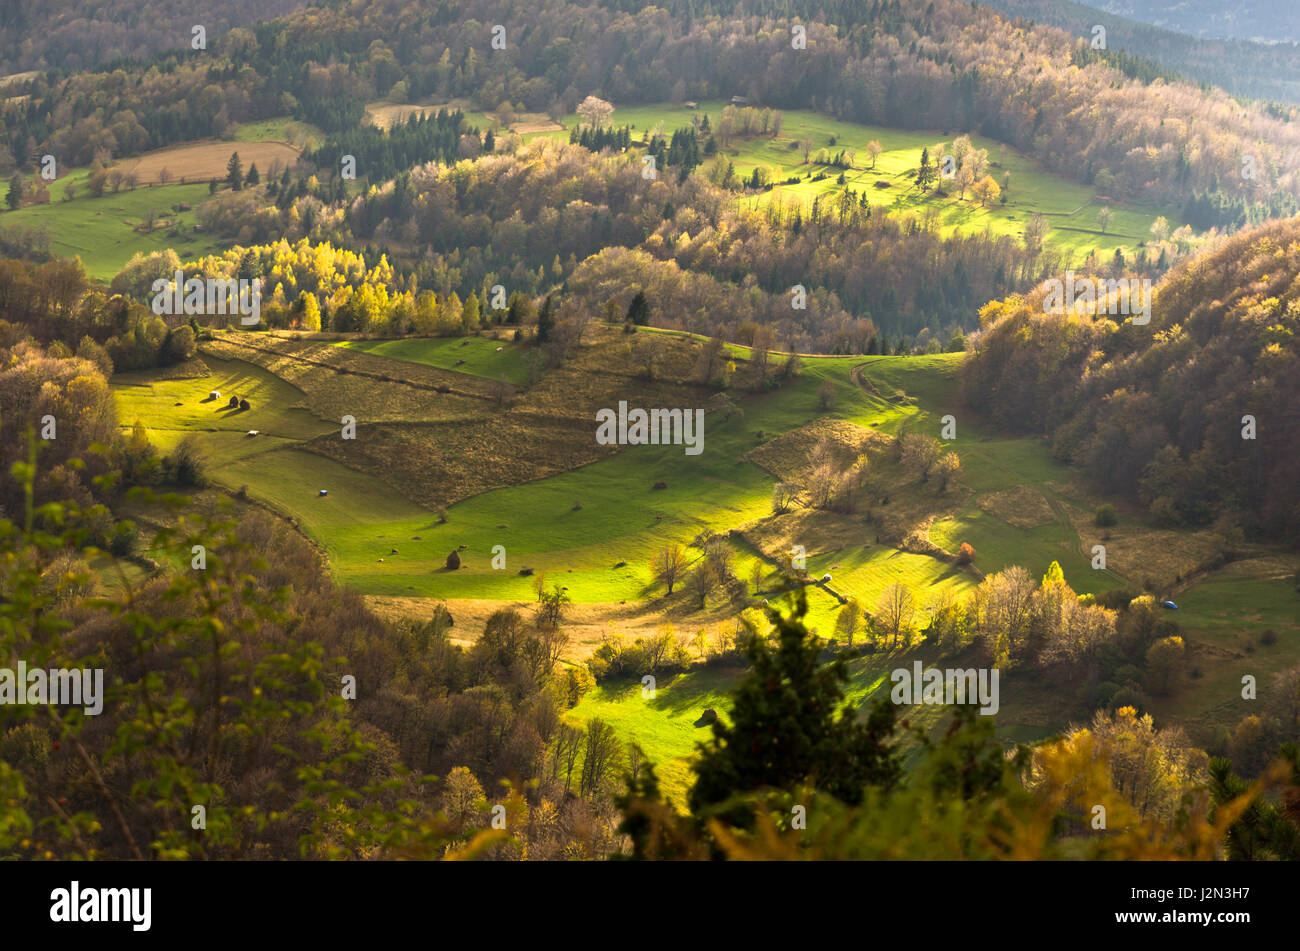 Mountain meadows at autumn illuminated by devine light radocelo mountain central serbia stock